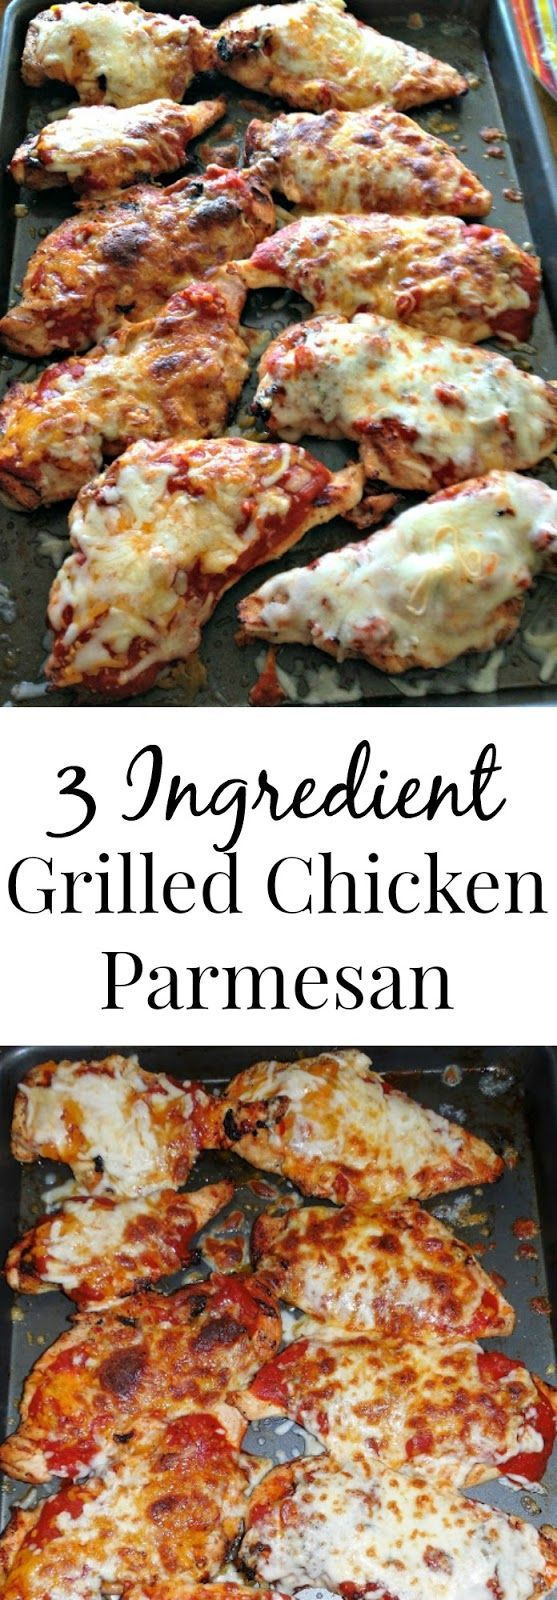 3 Ingredient Grilled Chicken Parmesan- easy and delicious! Much healthier than the breaded and fried version. www.nutritionistr...